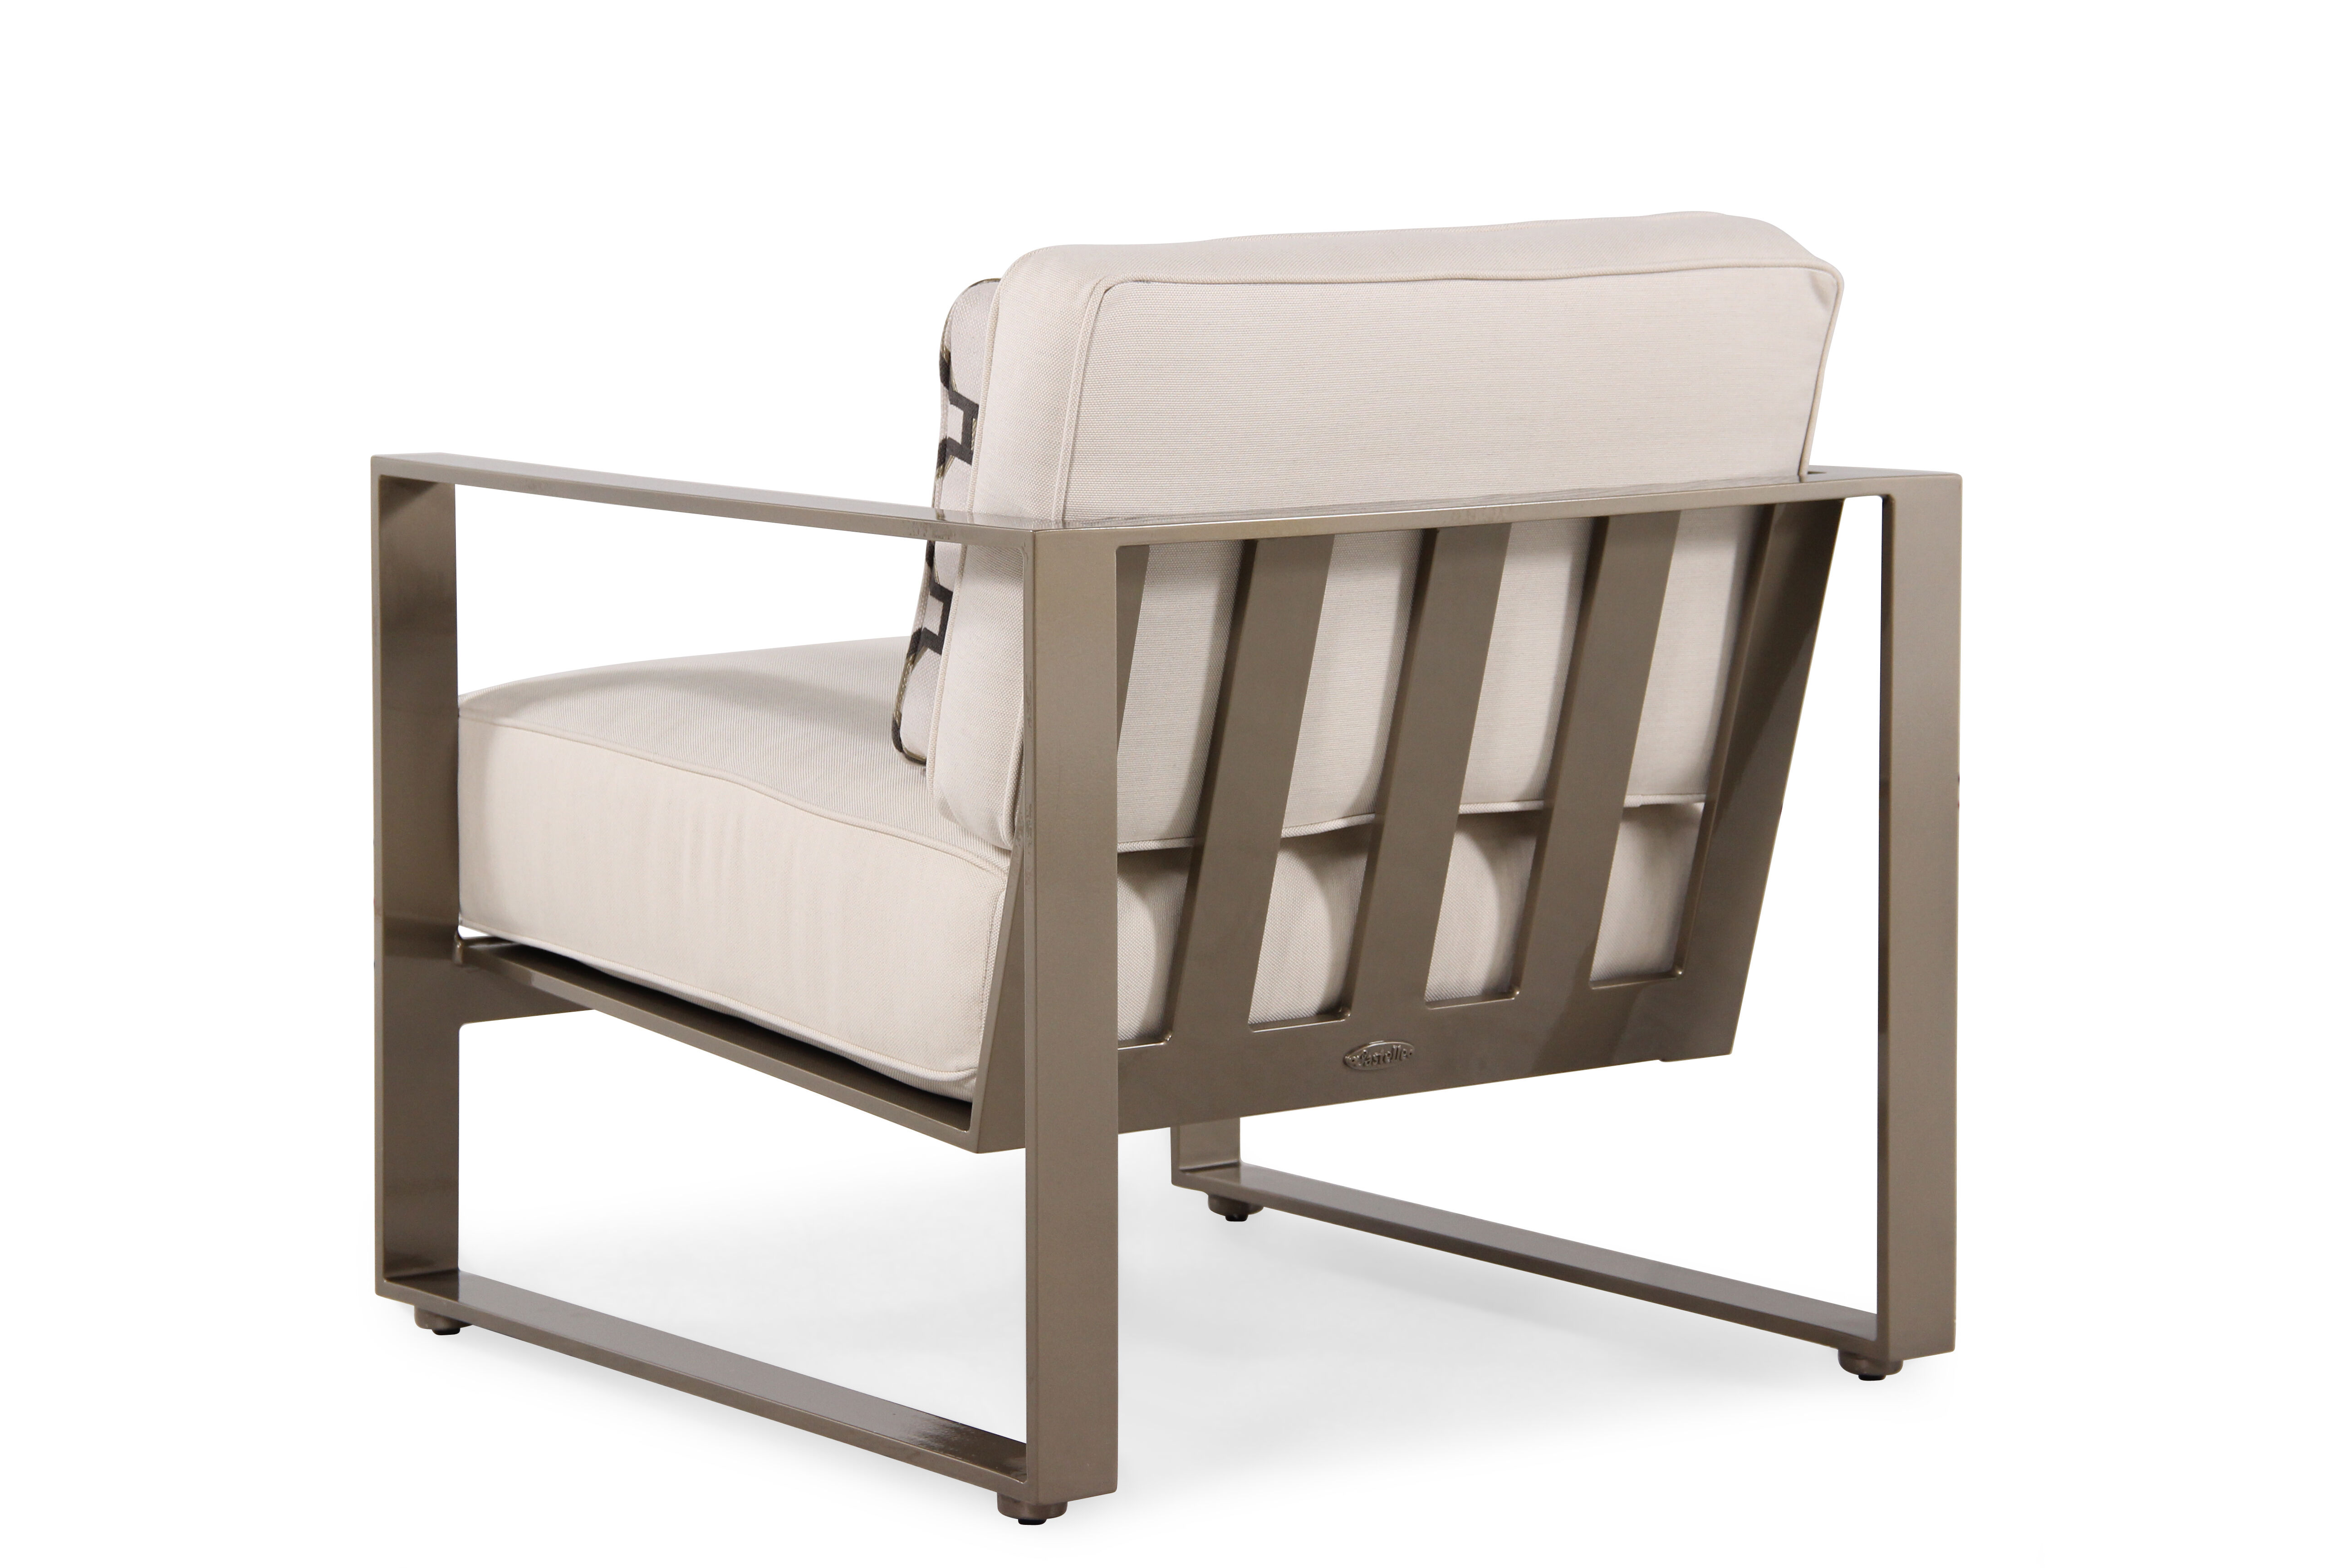 cream lounge chair office kohls weather resistant aluminum in mathis